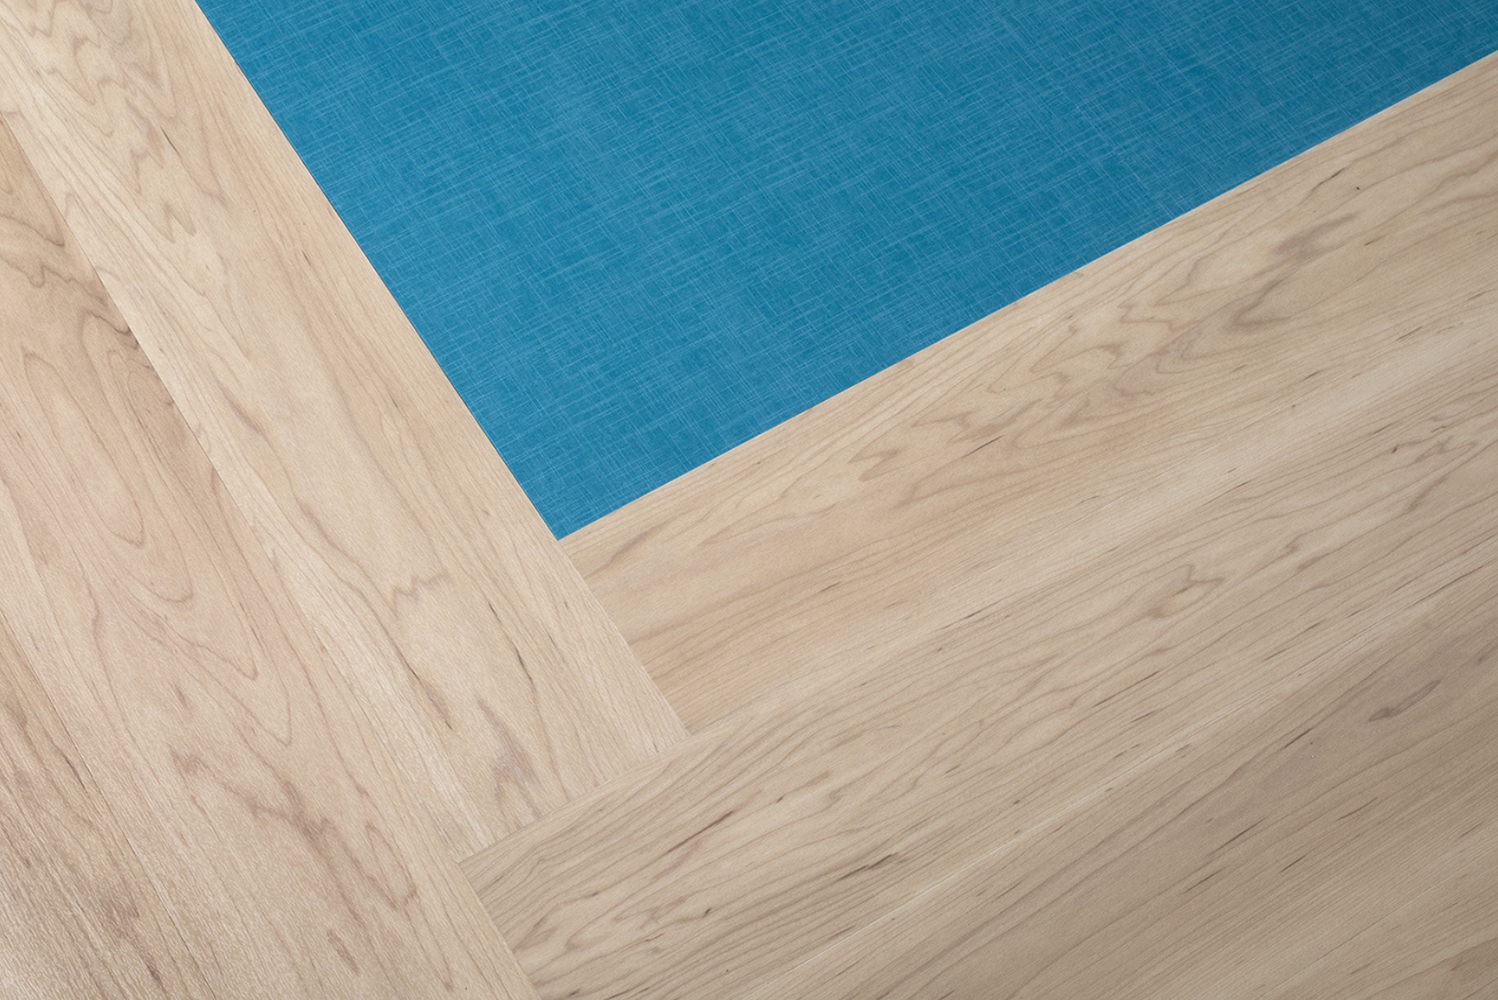 The collection pairs with Parterre's current running line of 3mm luxury vinyl tile and plank products.